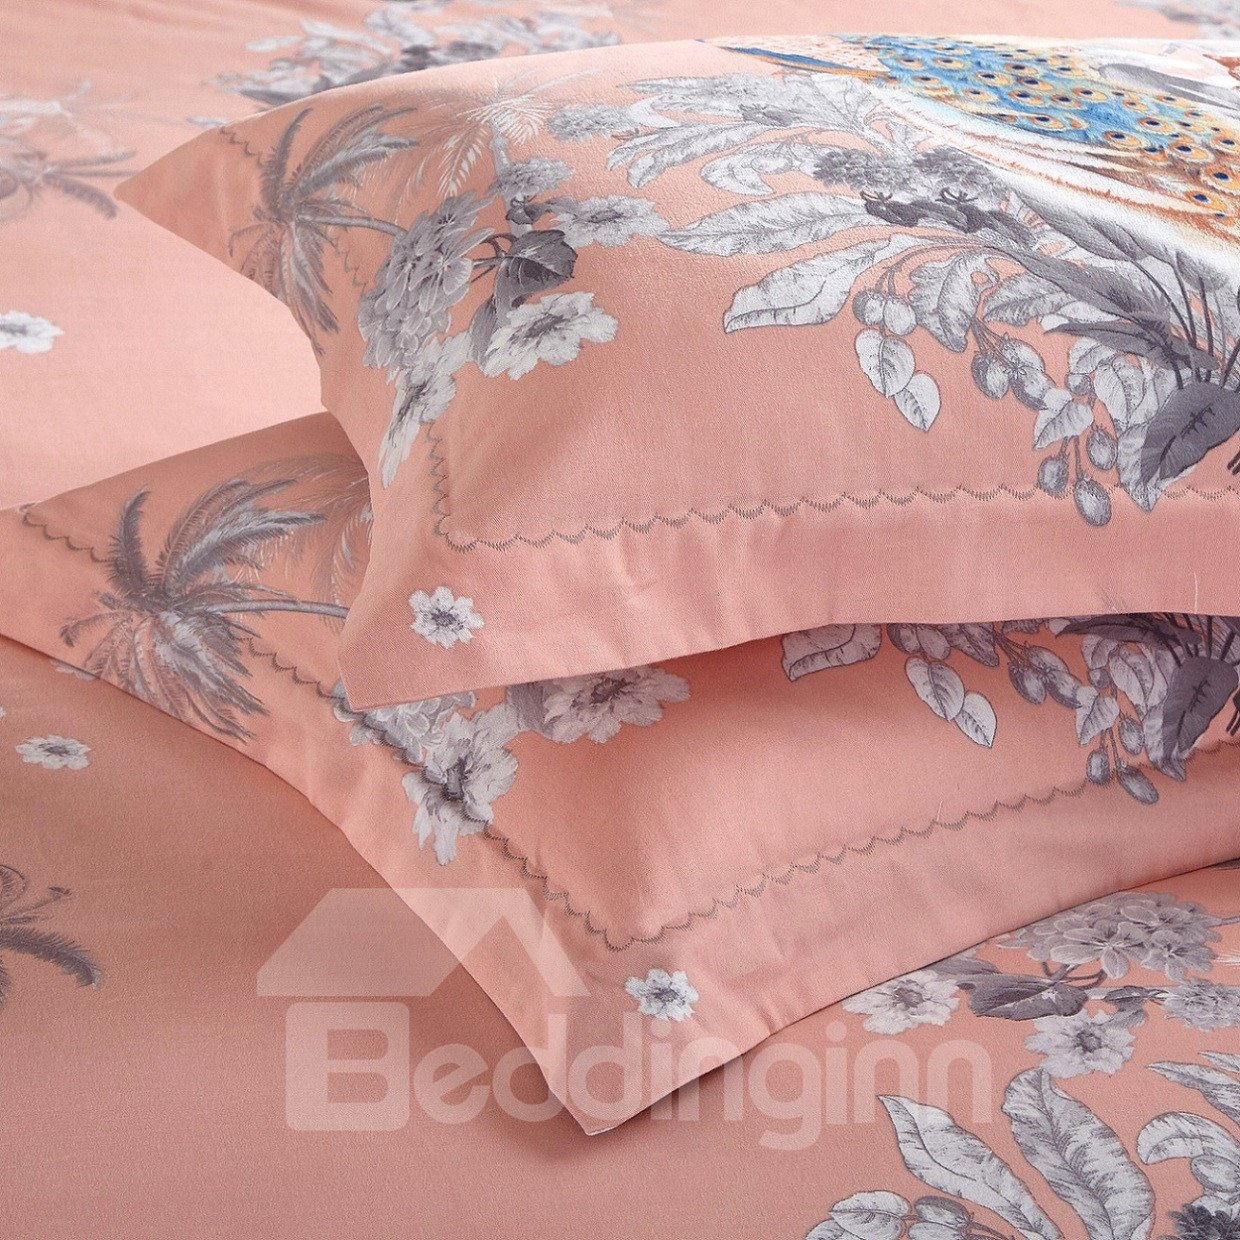 Peacocks and Tigers with Flowers Blooming Pattern Cotton 4-Piece Bedding Sets/Duvet Cover